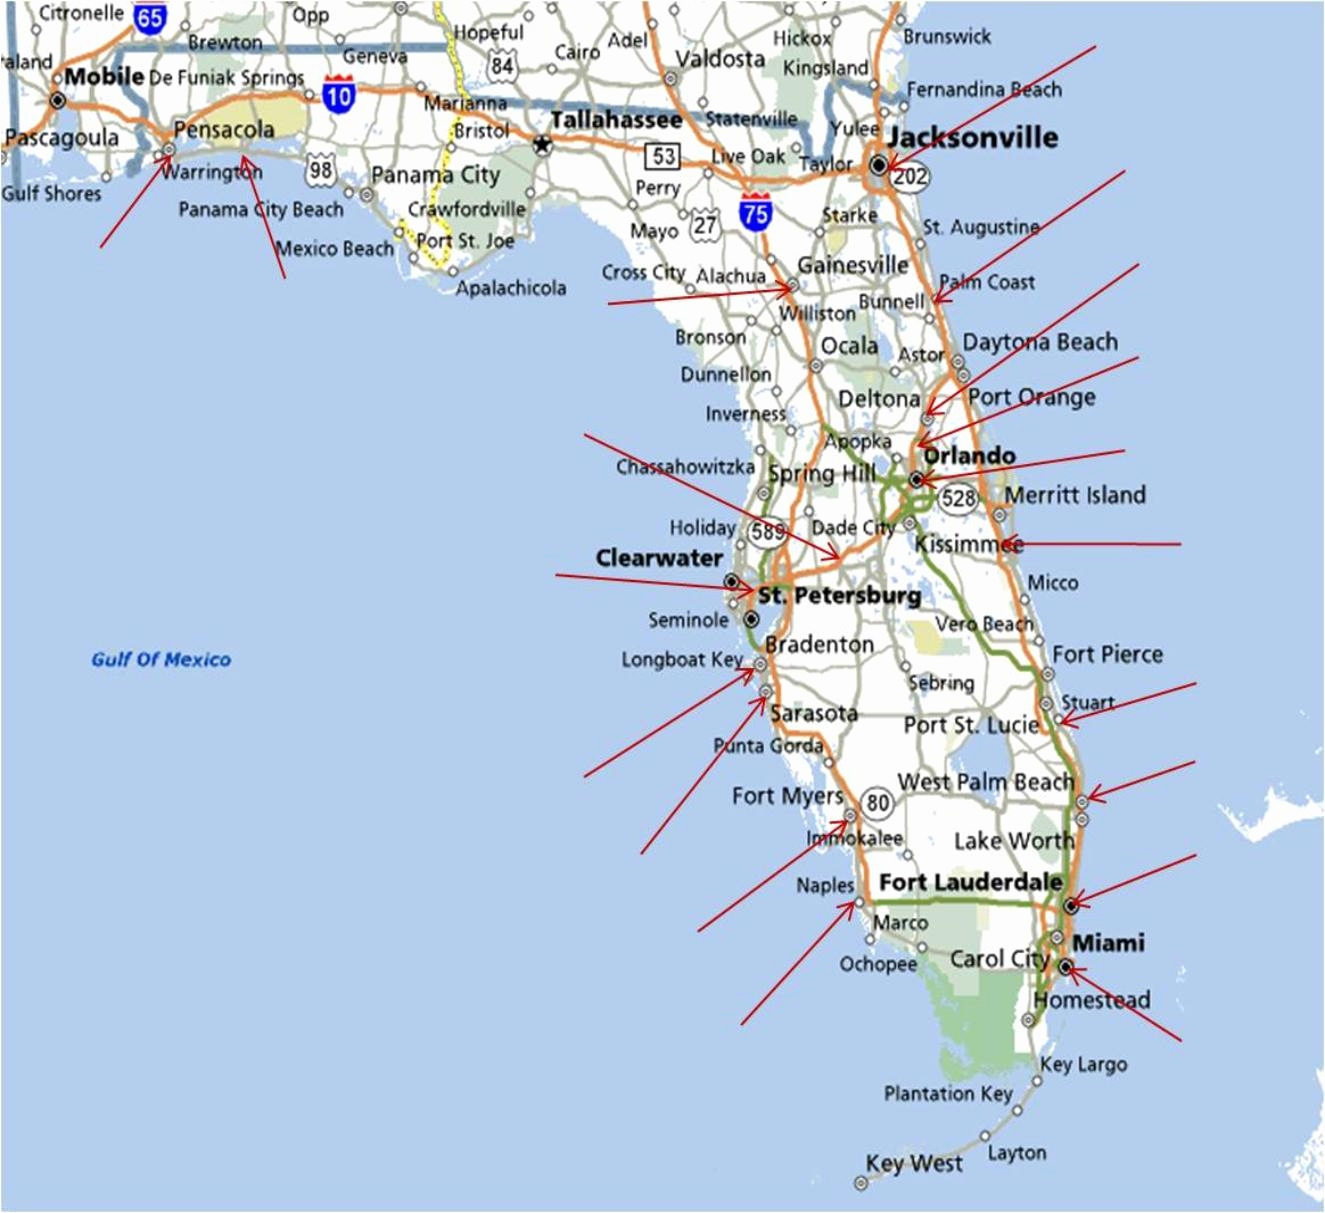 Best East Coast Florida Beaches New Map Florida West Coast Florida - Map Of Florida Beaches